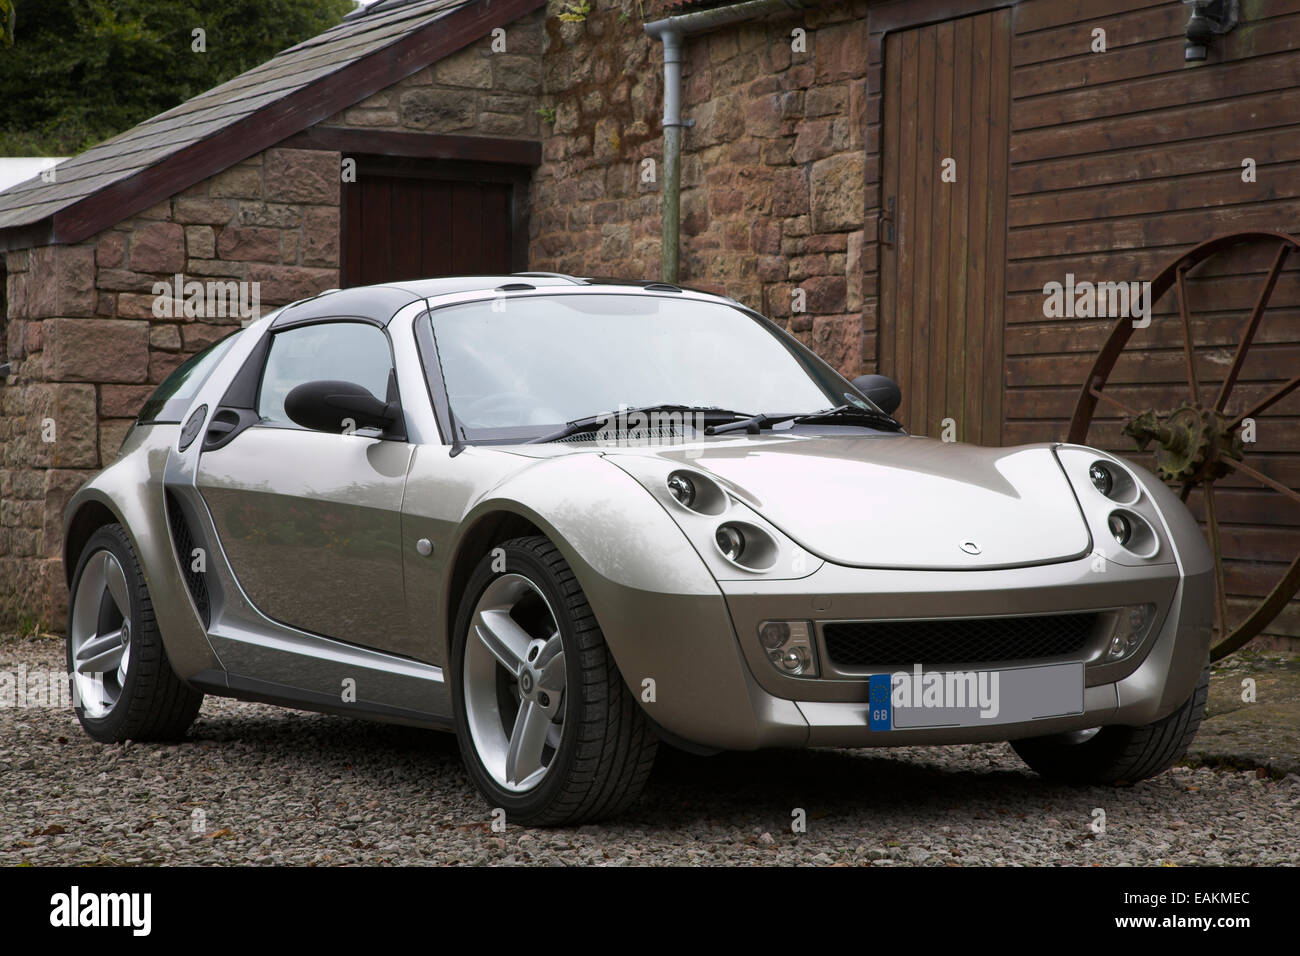 gold coloured smart roadster coupe car stock photo royalty free image 75421204 alamy. Black Bedroom Furniture Sets. Home Design Ideas